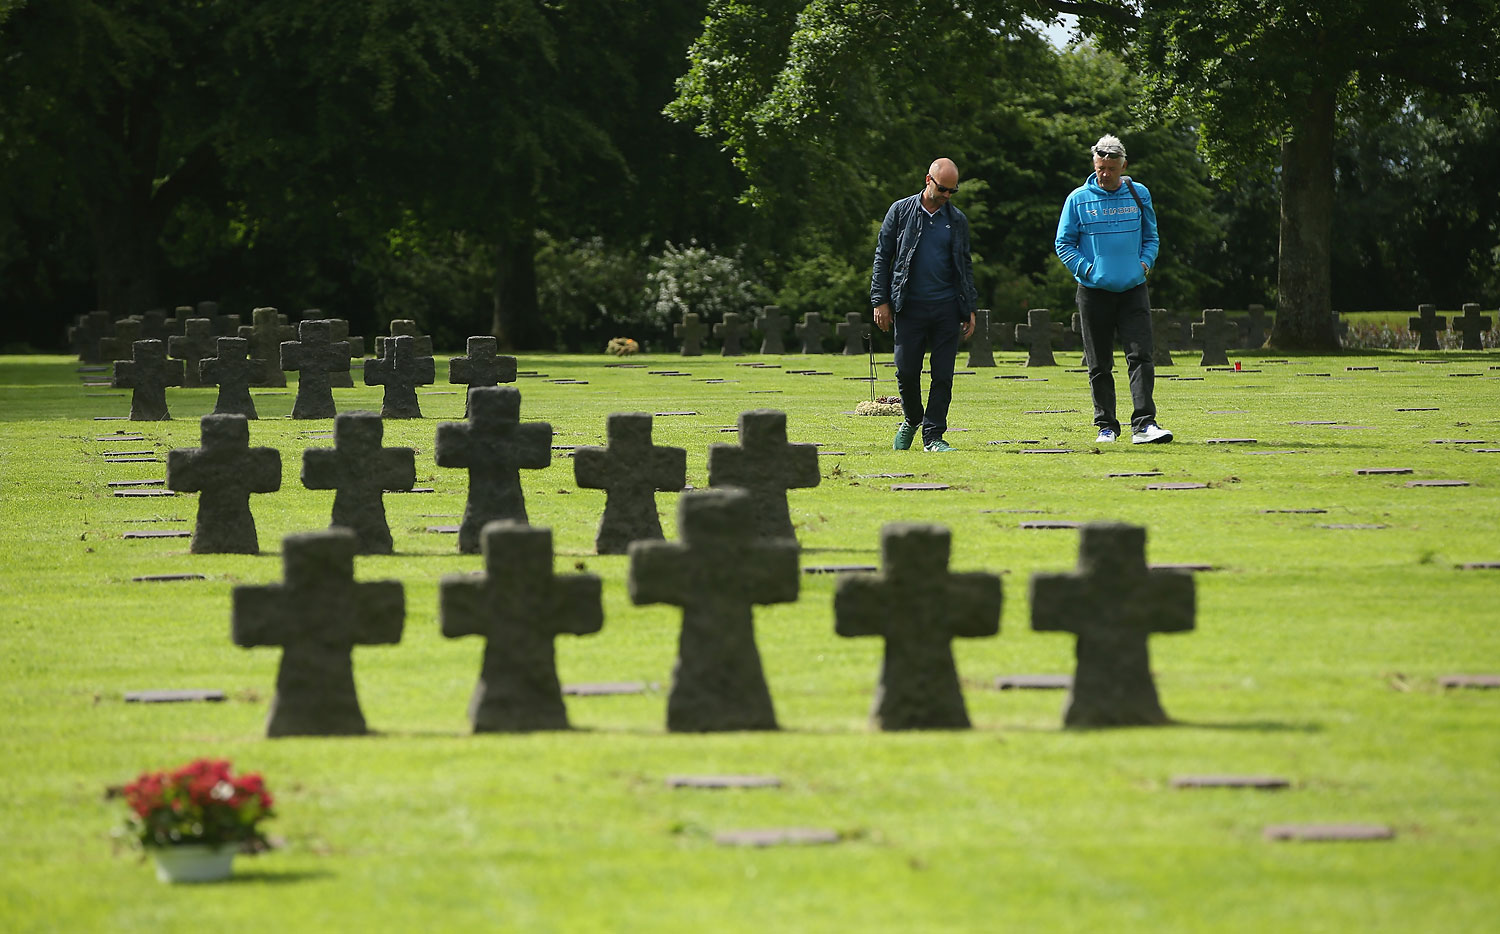 Visitors walk among gravestones at the German Cemetery where approximately 21,000 German World War II soldiers are buried on June 5, 2014 at La Cambe, France.